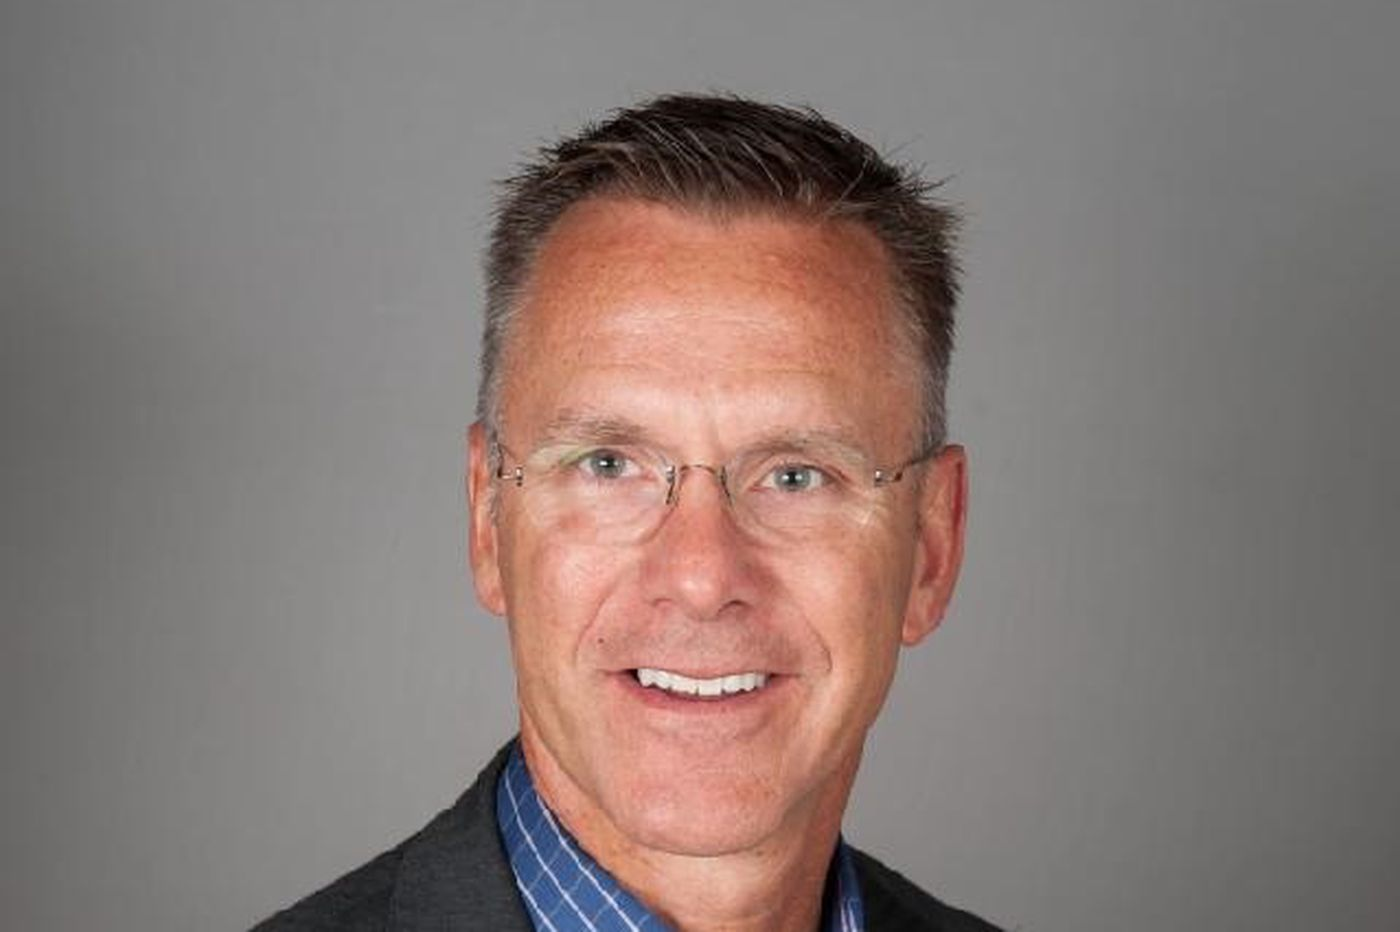 Jeffrey Ostrowski, leader in the field of physical therapy, dies at 58